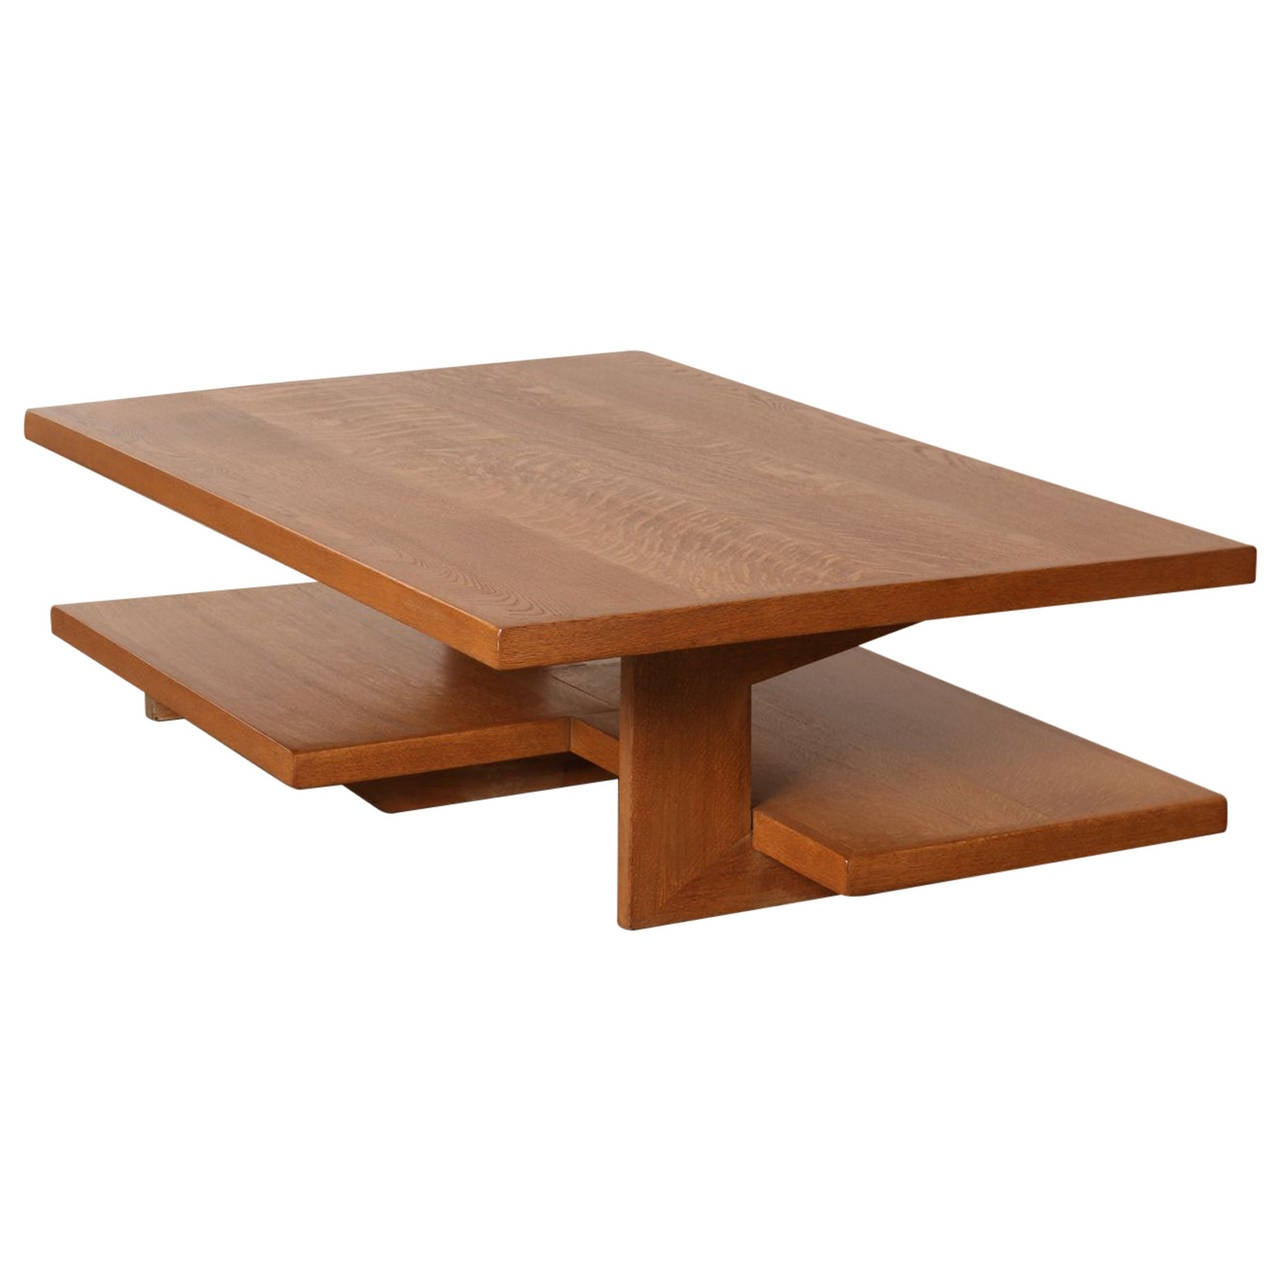 Neutra Frank Lloyd Wright Style Architects Coffee Table At 1stdibs